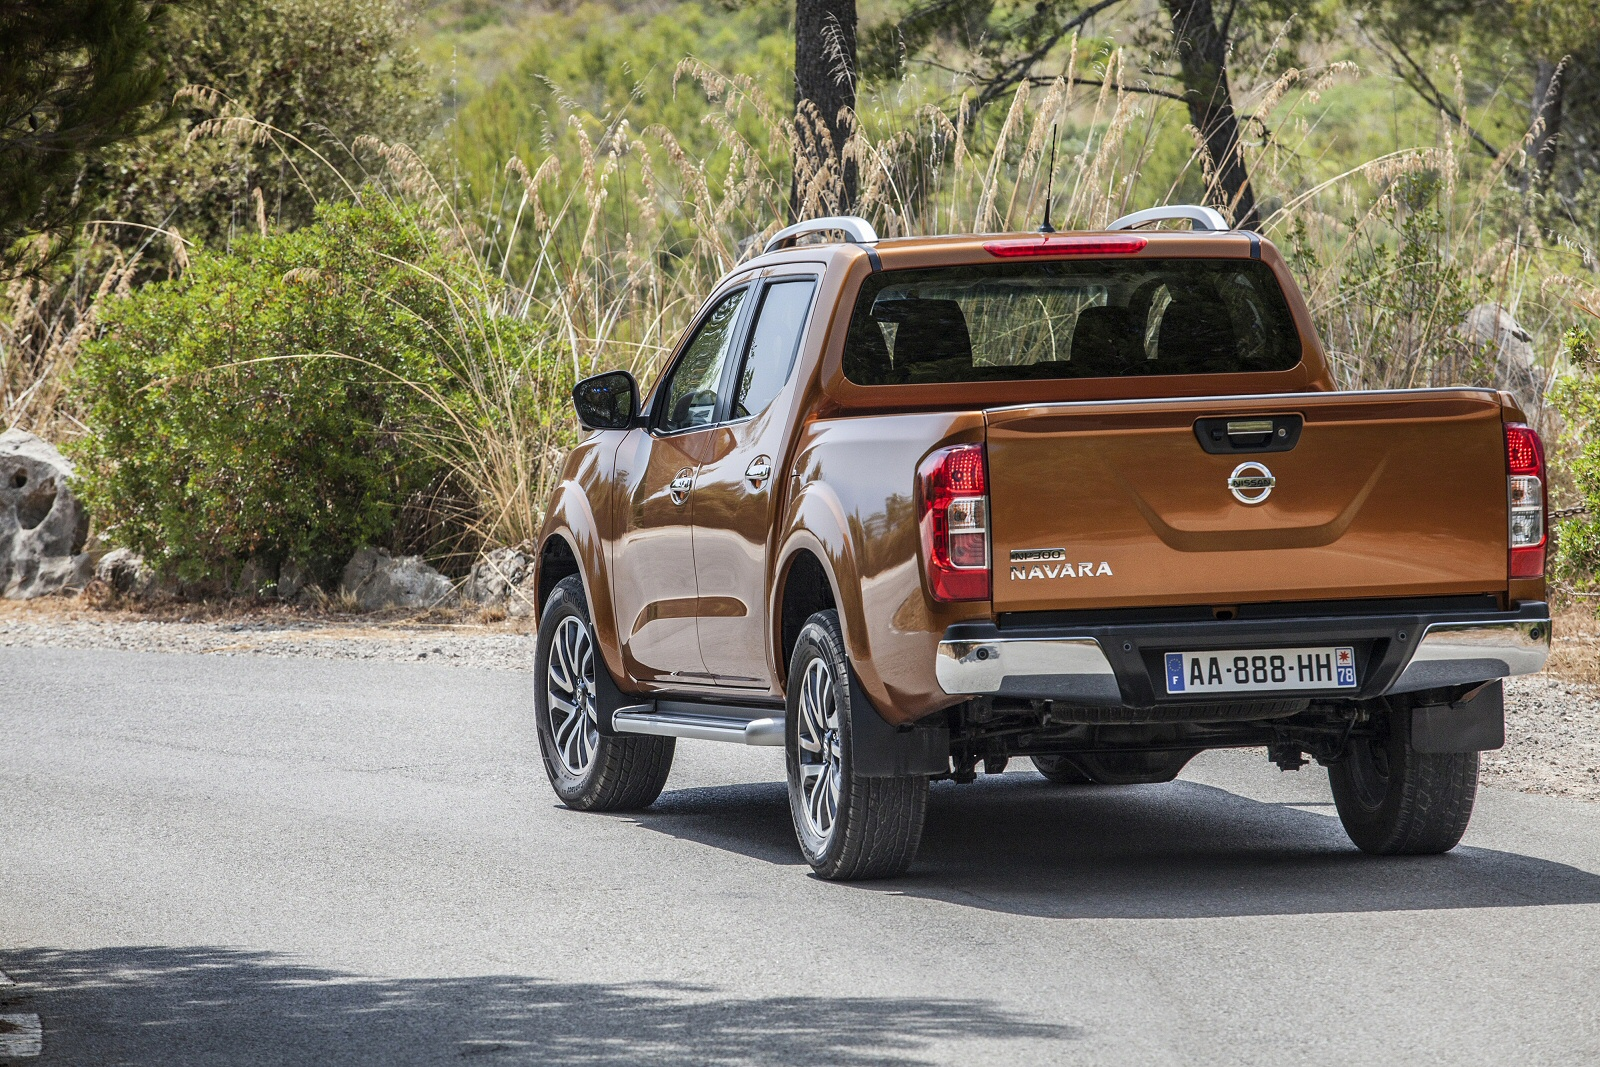 Nissan Navara - truck with leather interior